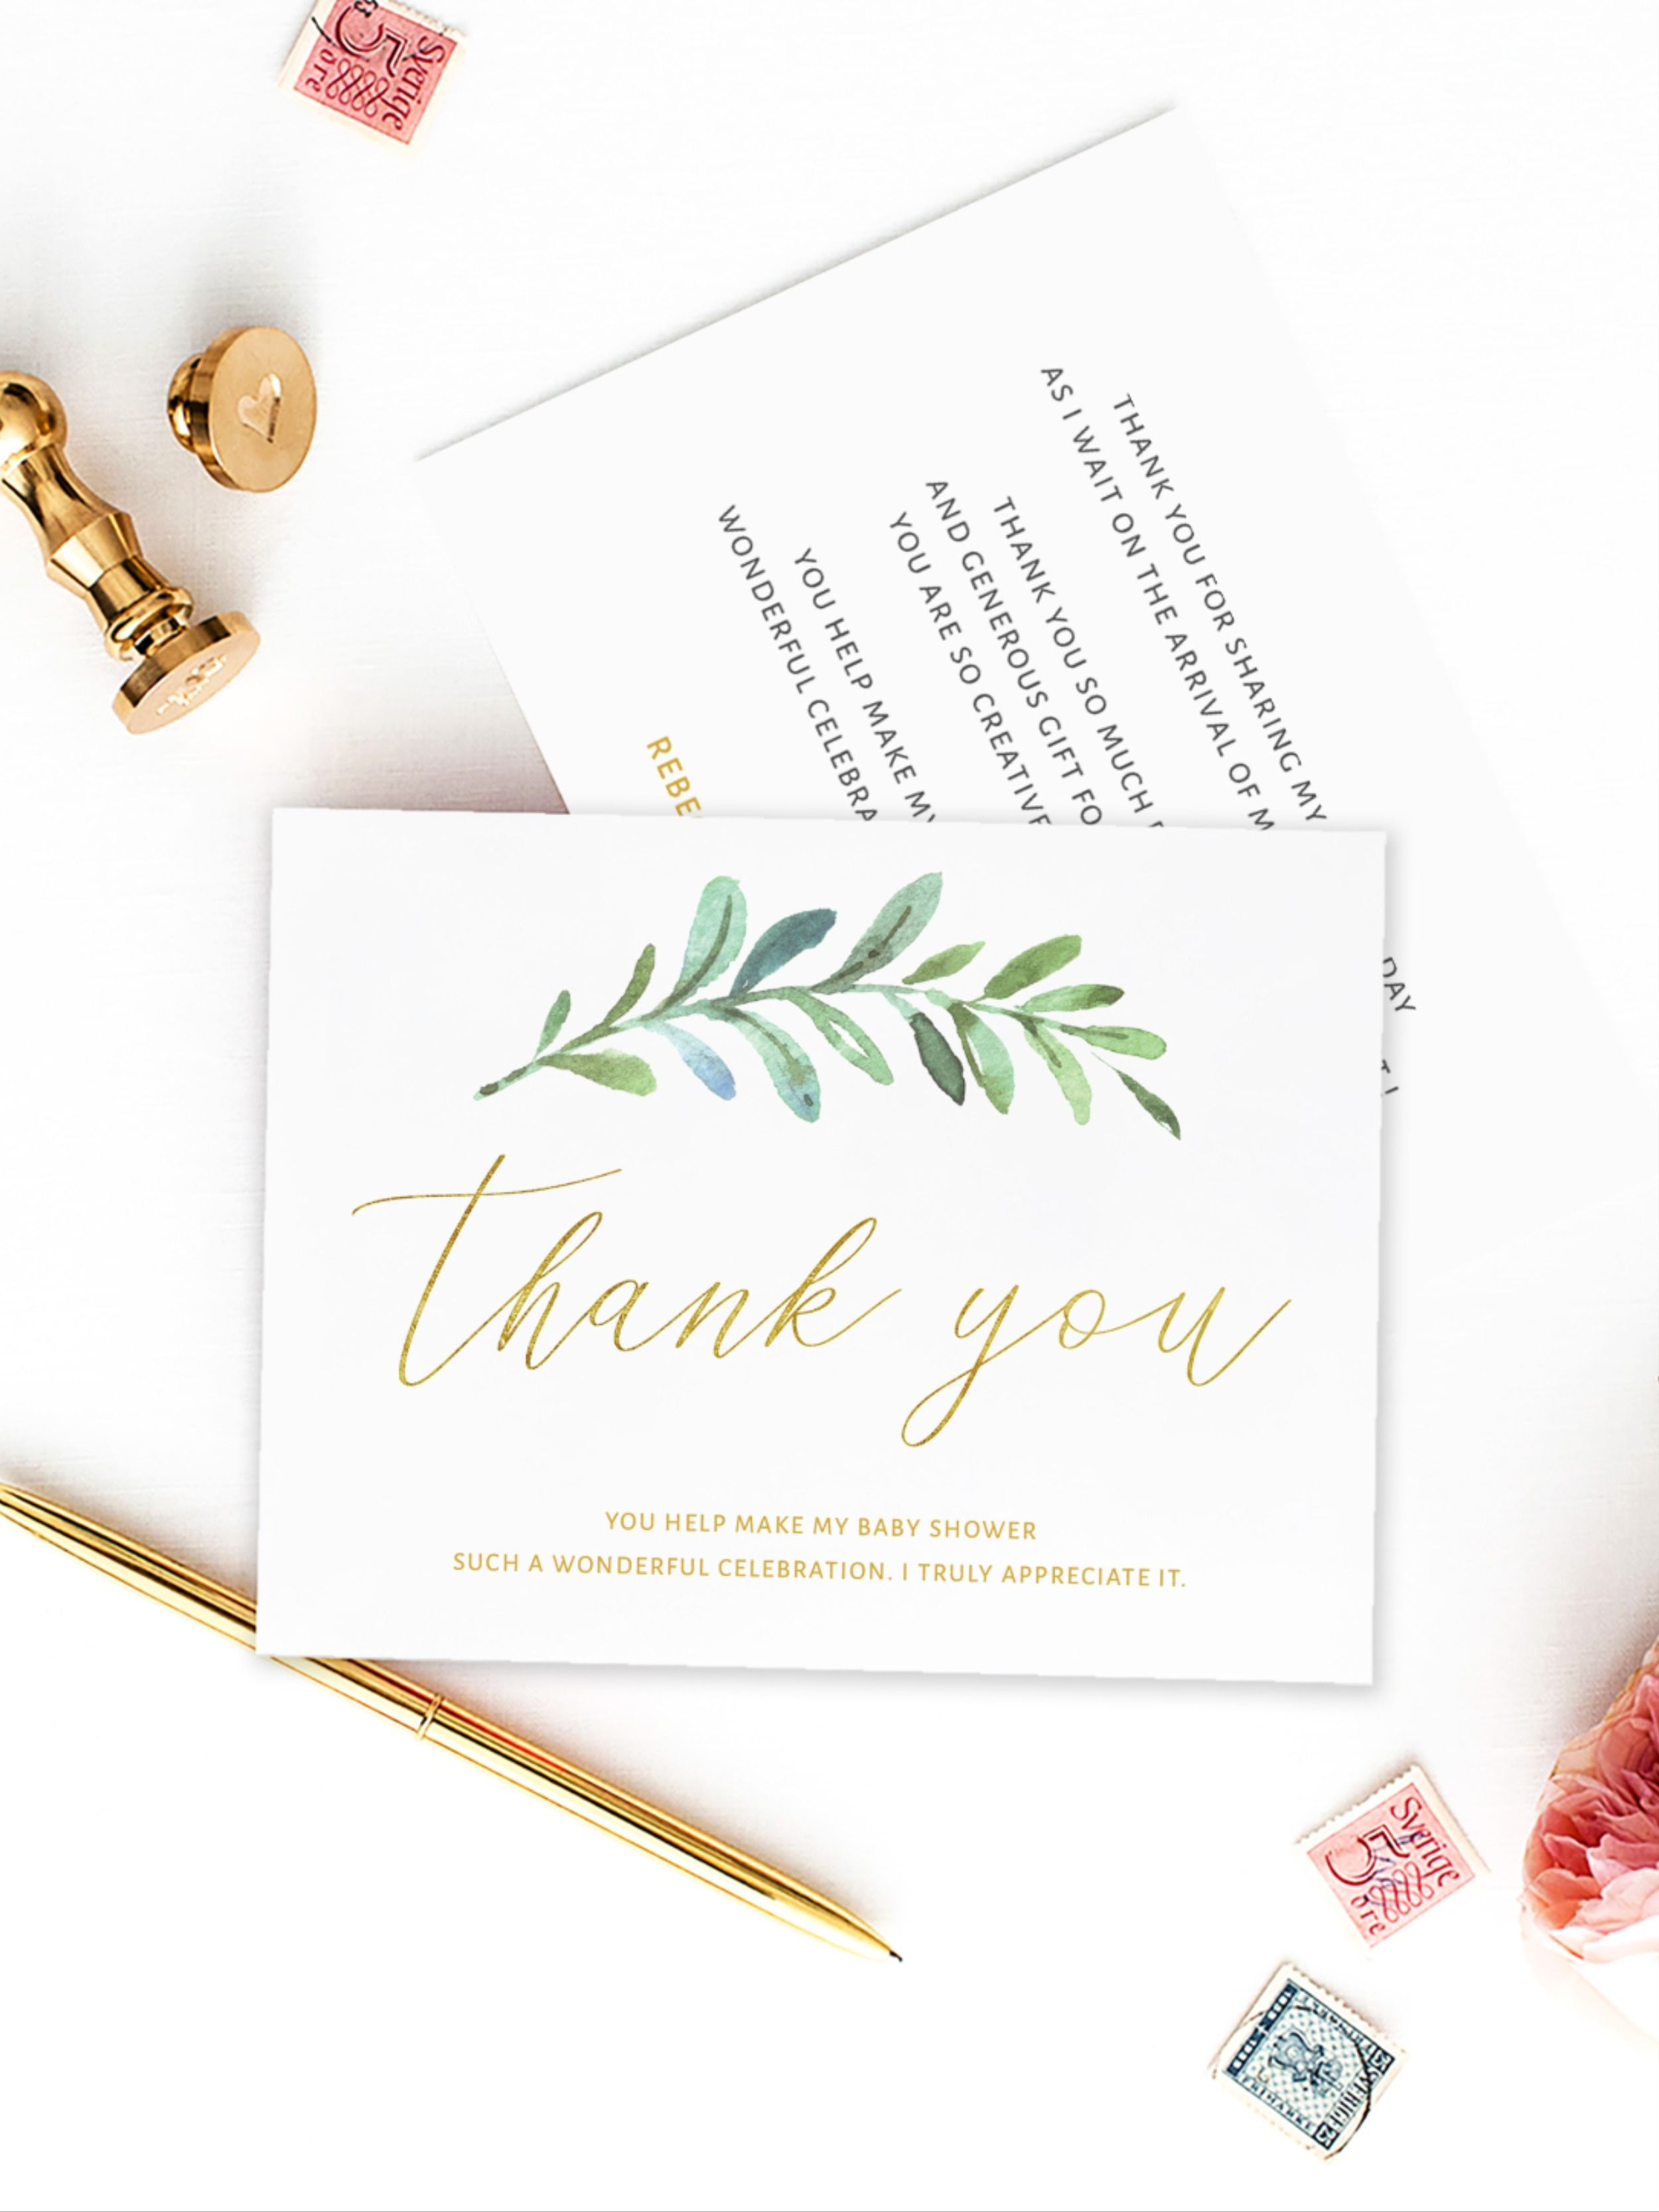 Greenery Wreath Baby Shower Thank You Card Template DIY Thank You Card Template Editable Thank Card Template Thank You Card Photo